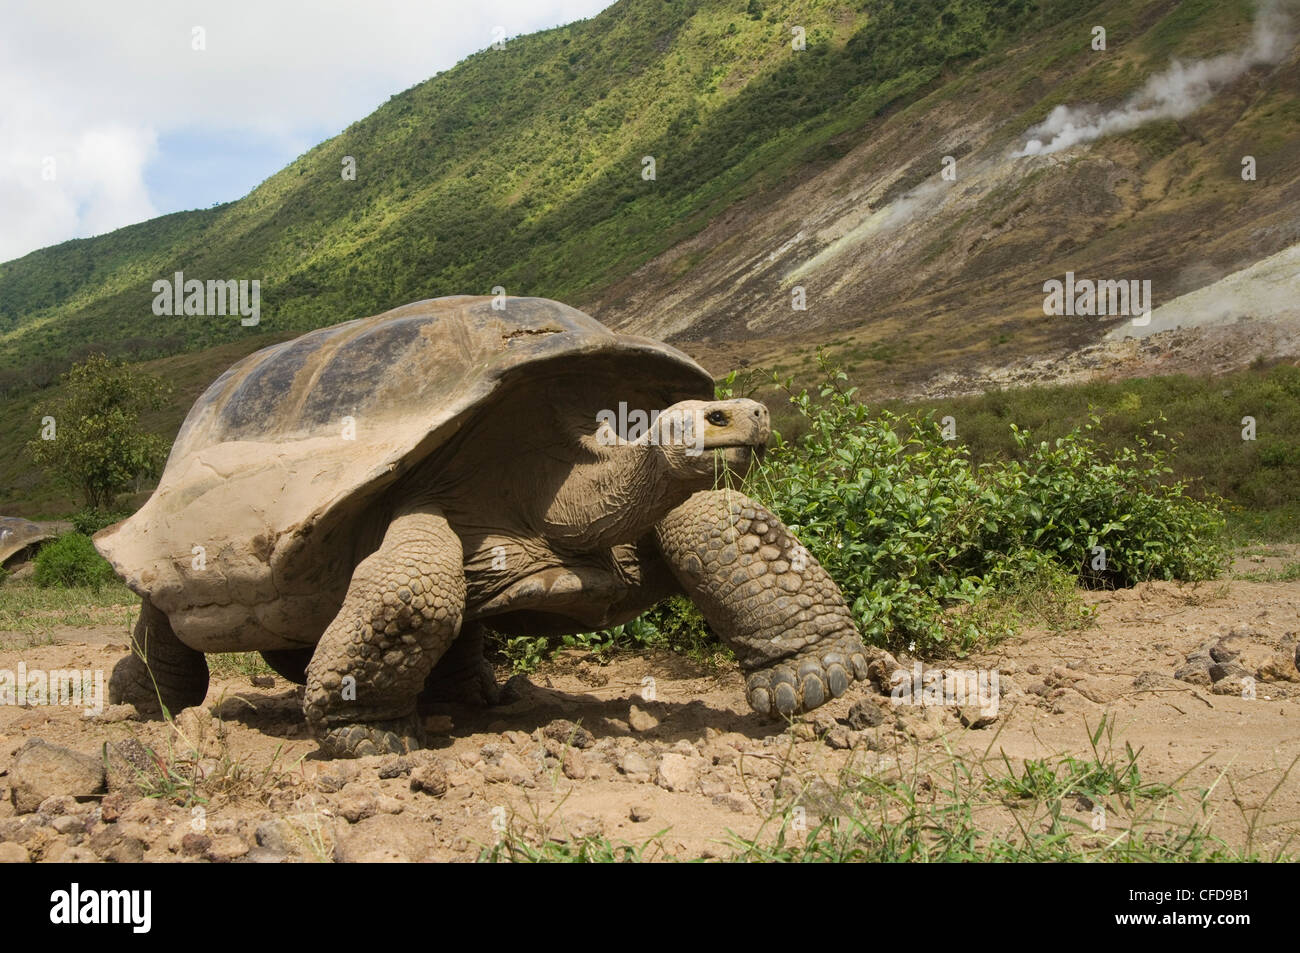 Galapagos Giant Tortoise and steam vent, Alcedo Volcano, Isabela Island, Galapagos Islands, Ecuador, South America. - Stock Image